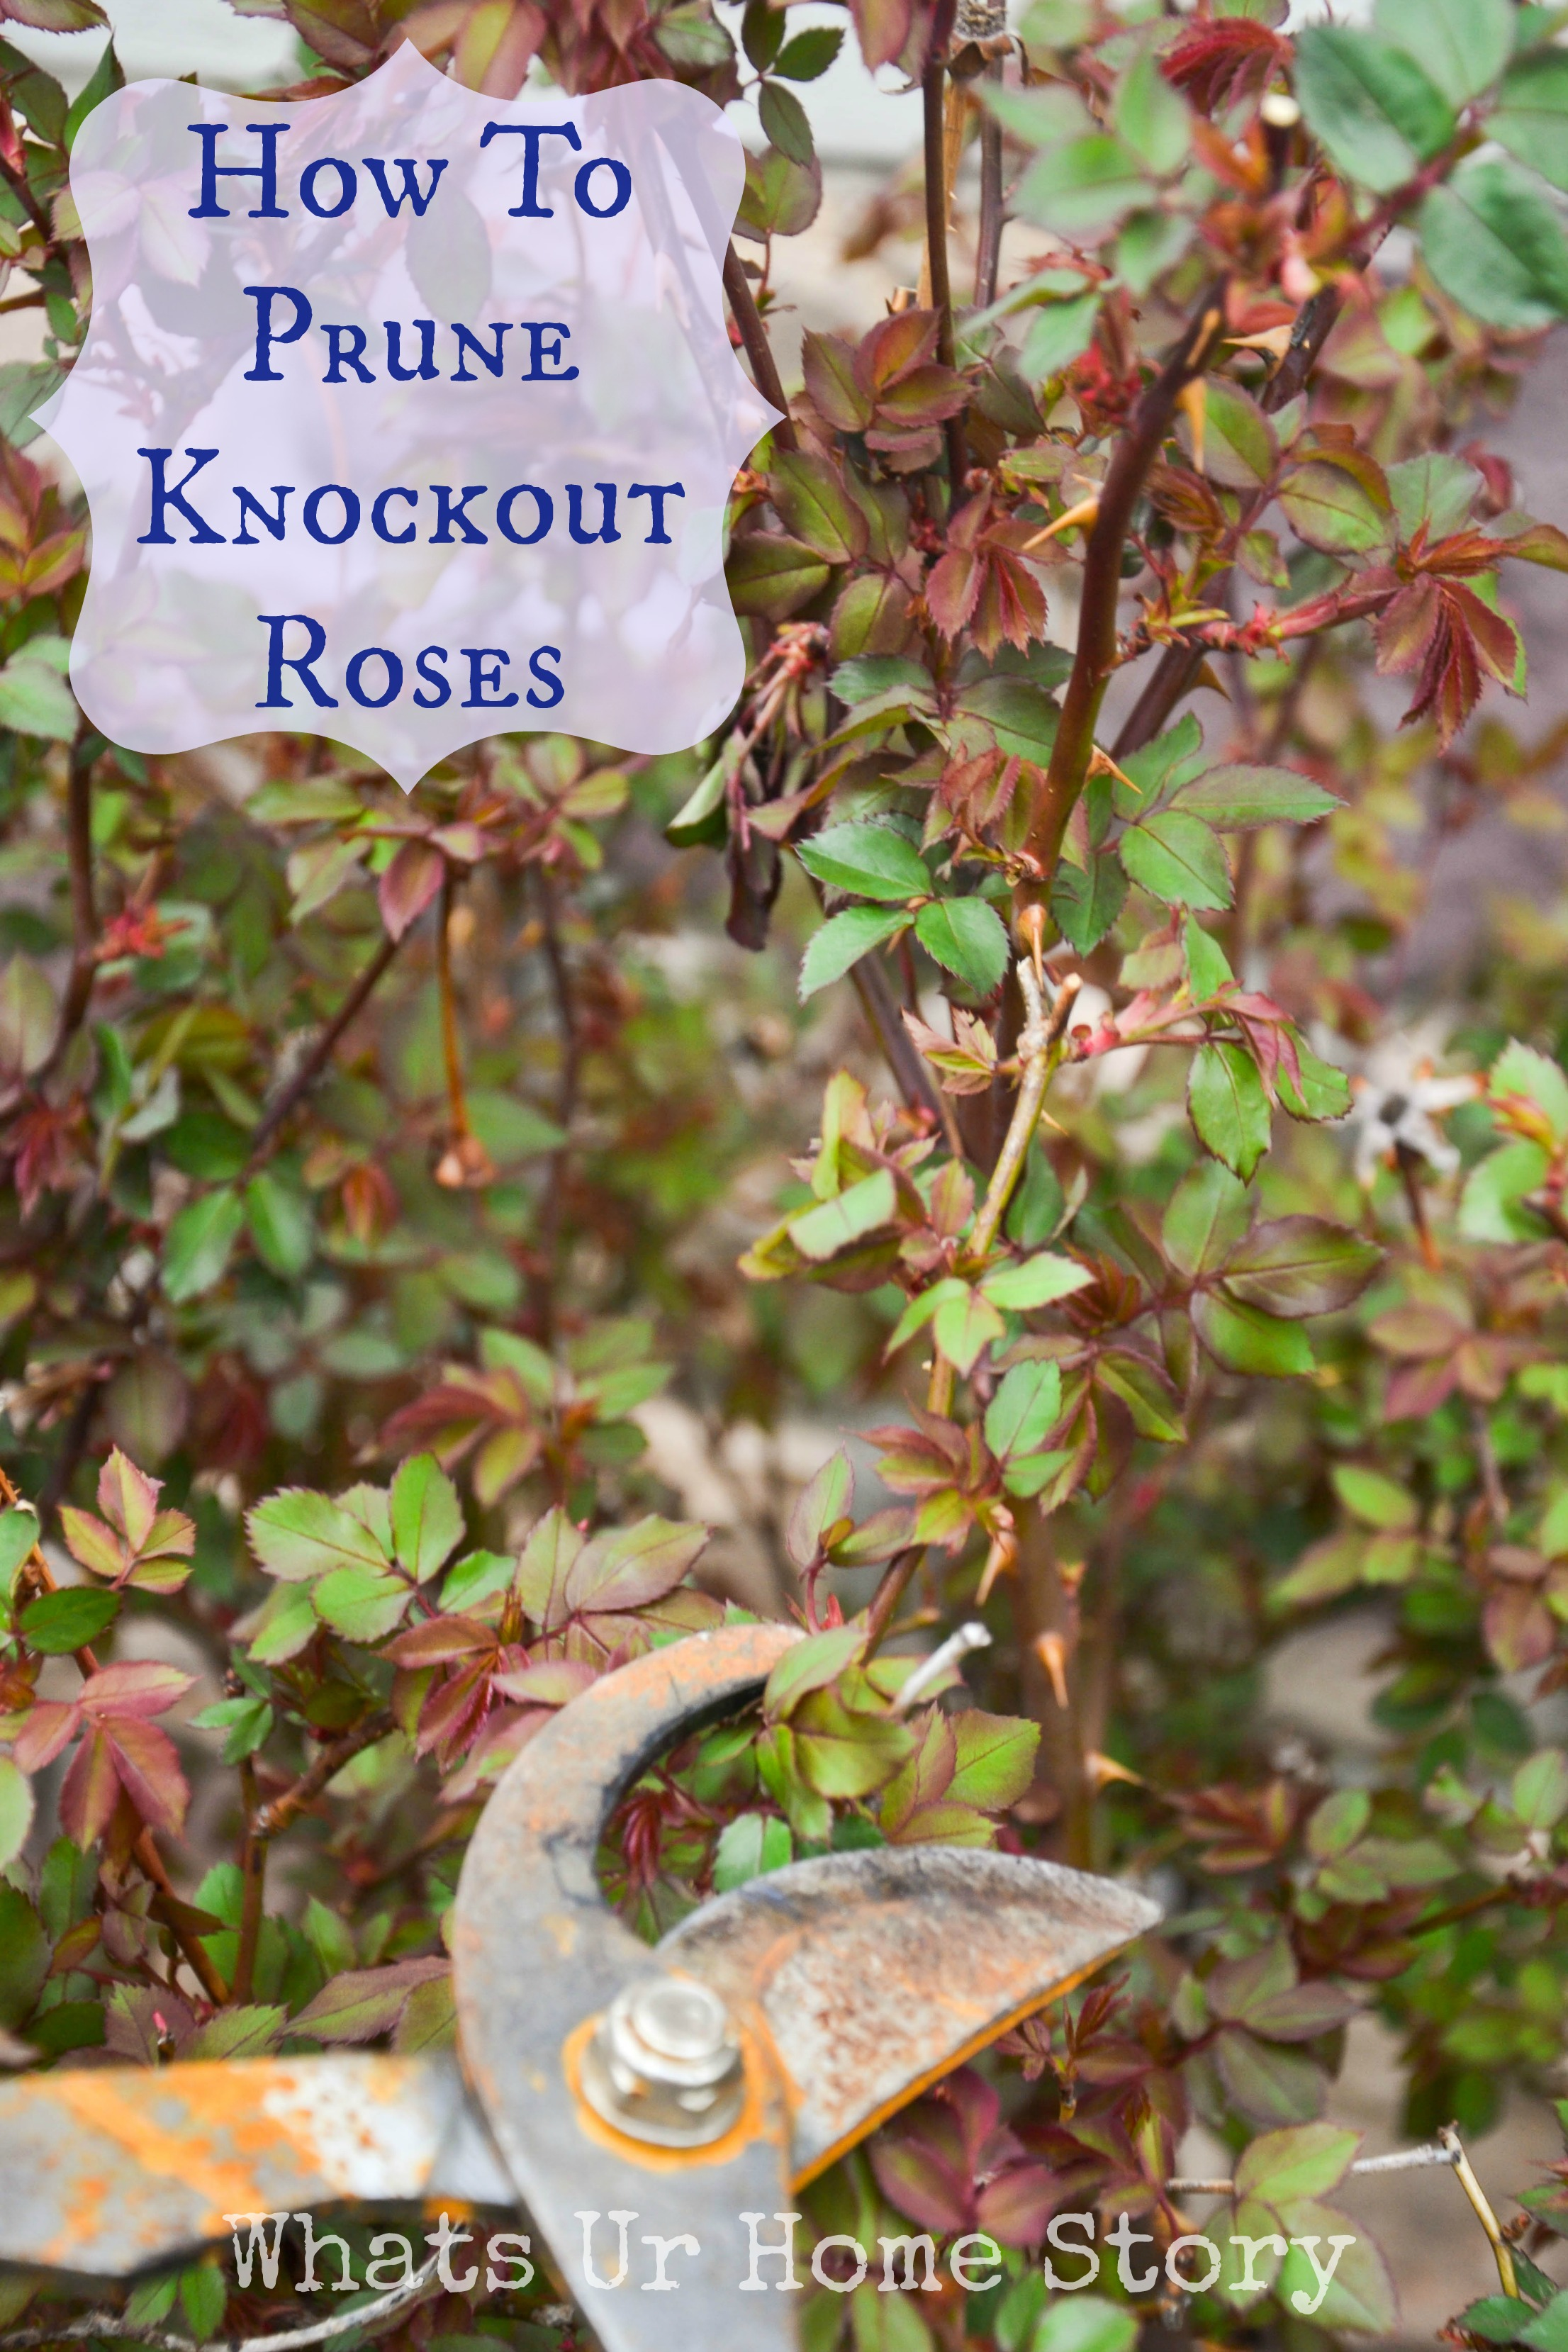 How to trim a rose bush - Pruning Knockout Roses